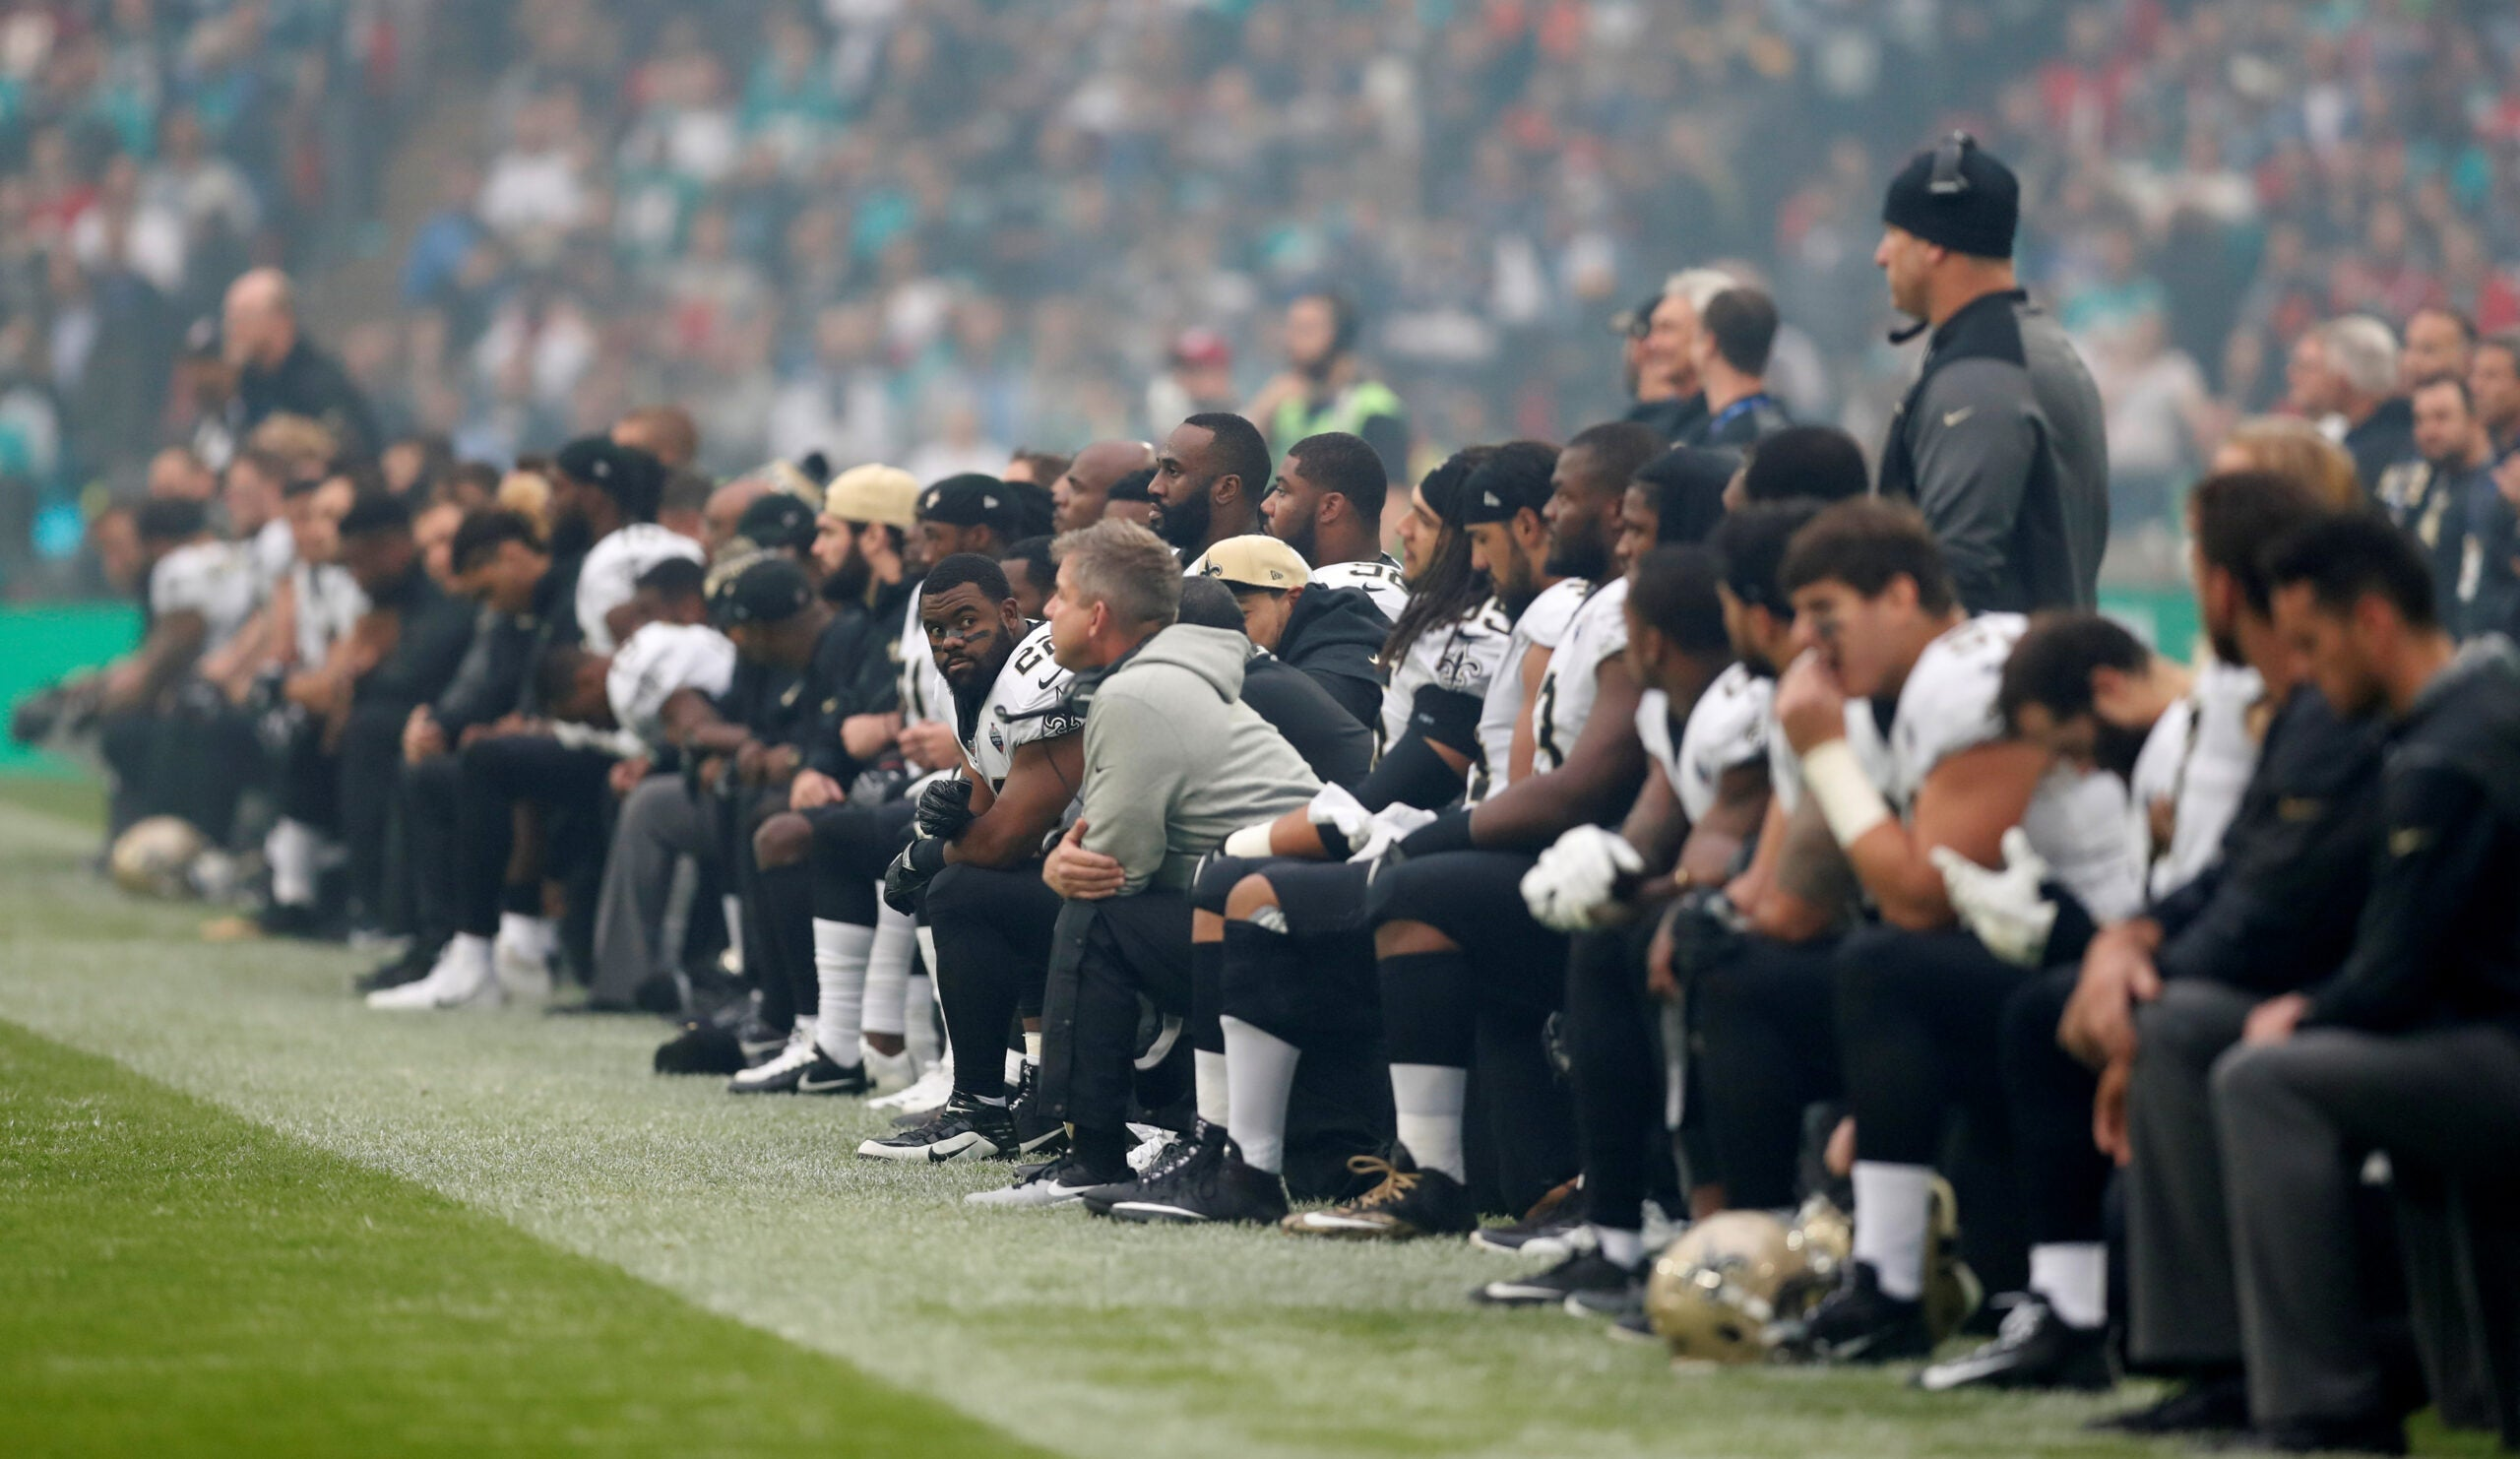 Trump says he 'won't be watching' NFL and US soccer if players kneel during national anthem